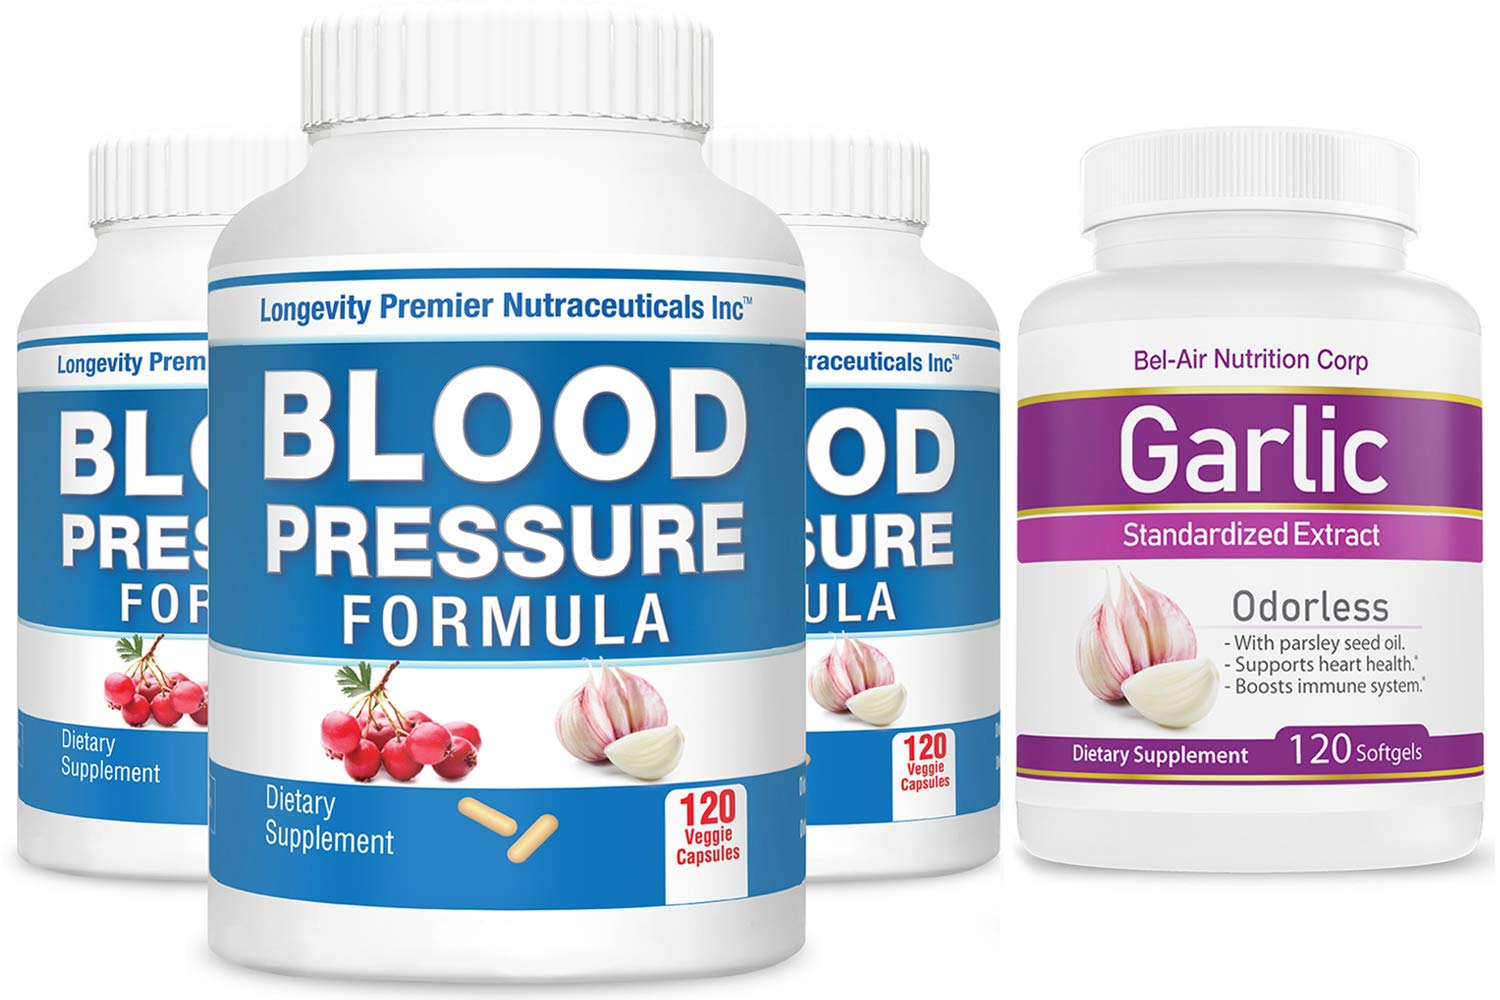 [3-Bottle Bonus Pack] Longevity Blood Pressure Formula 120 caps x 3 Bottles with 1 Free Bottle of Garlic Extract [120 softgels]